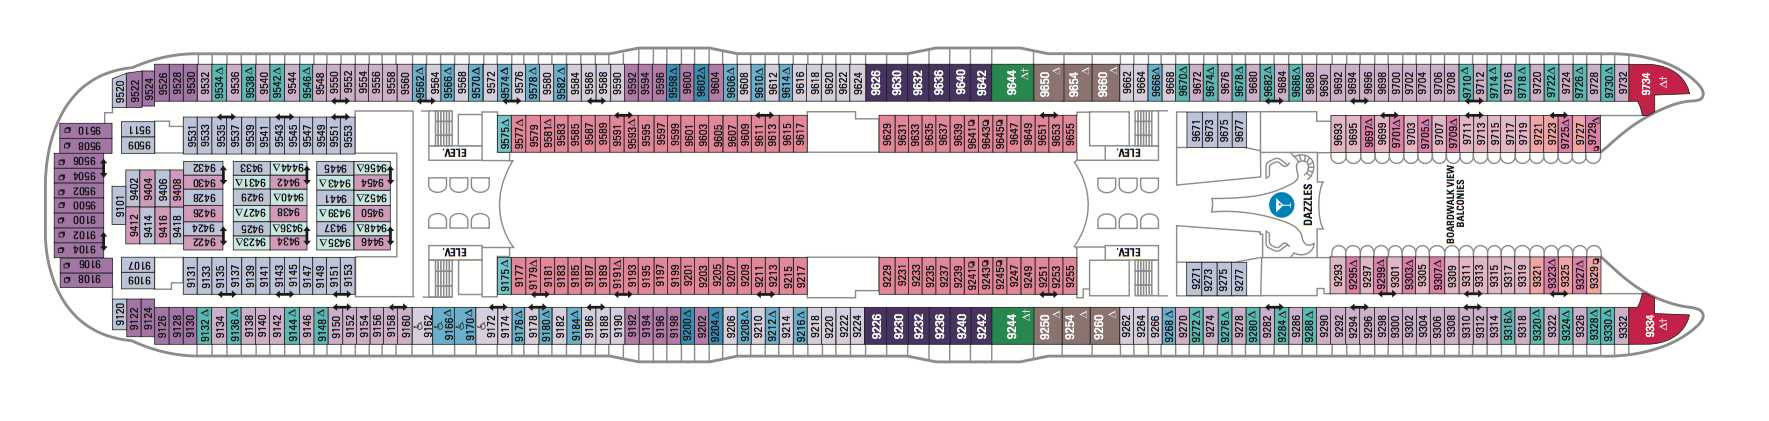 Royal Caribbean International Symphony of the Seas Deck Plans Deck 9.png